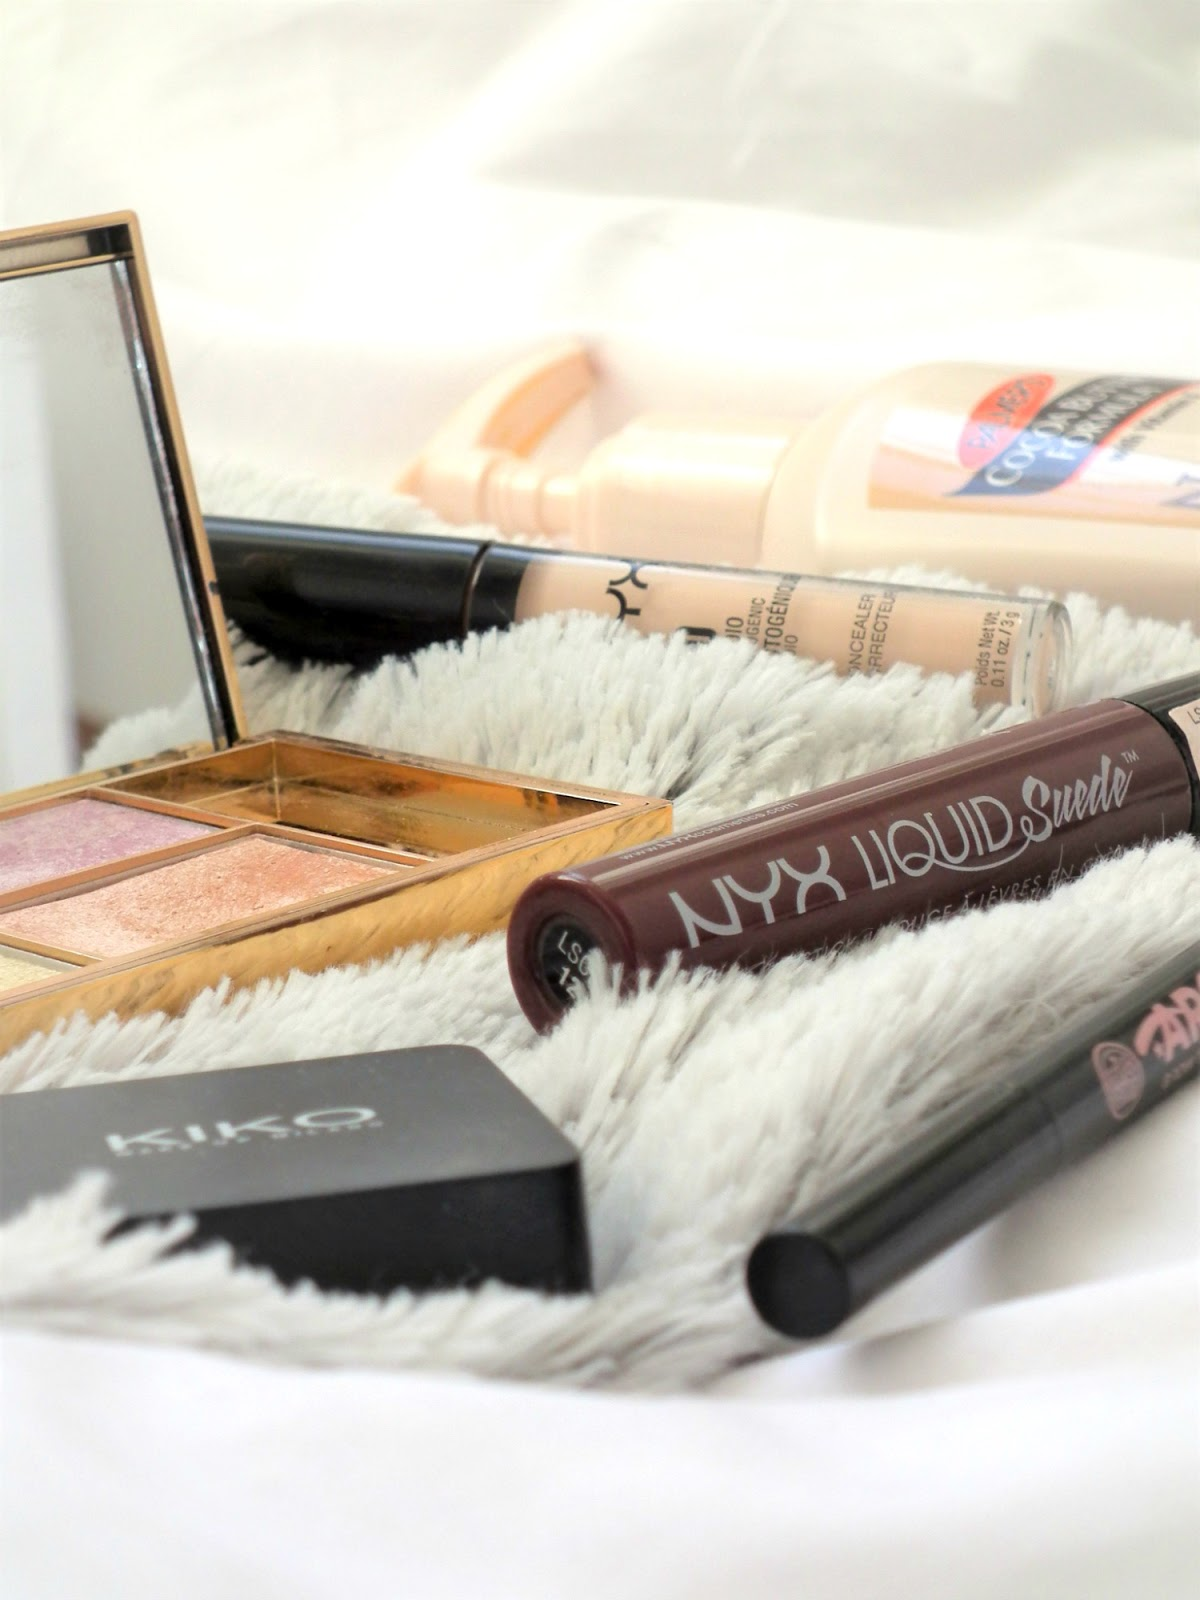 6 Products I Loved In 2016